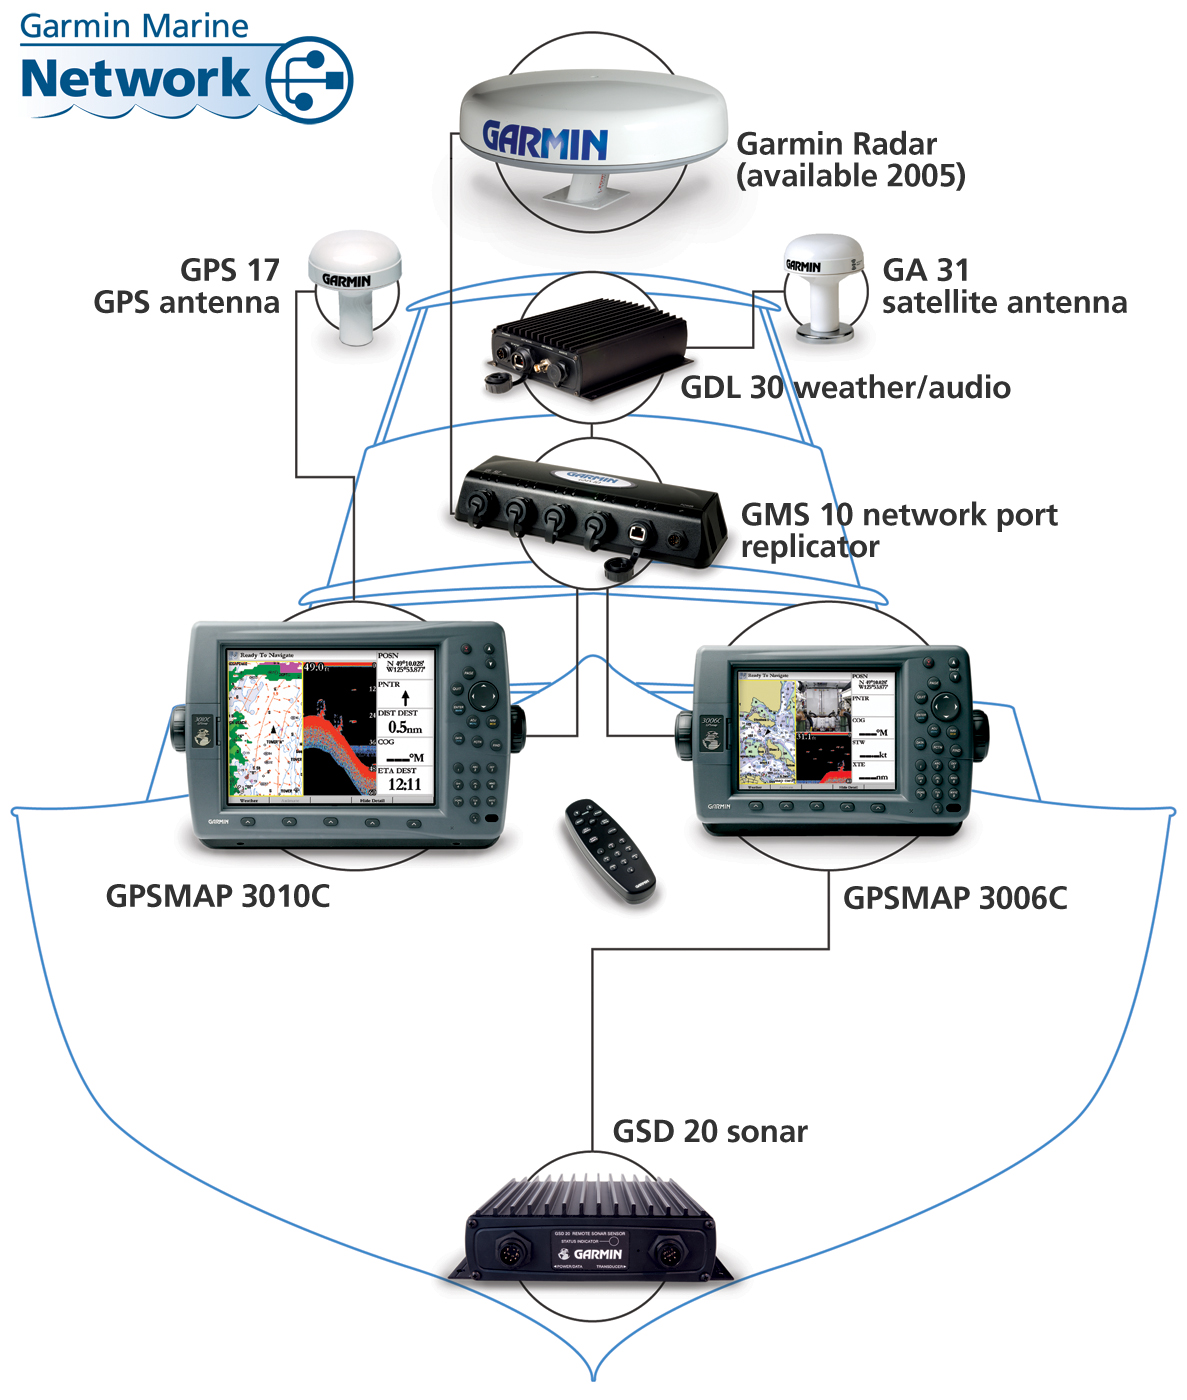 garmin usb power cable wiring diagram goodman 4 ton heat pump radar fishfinder